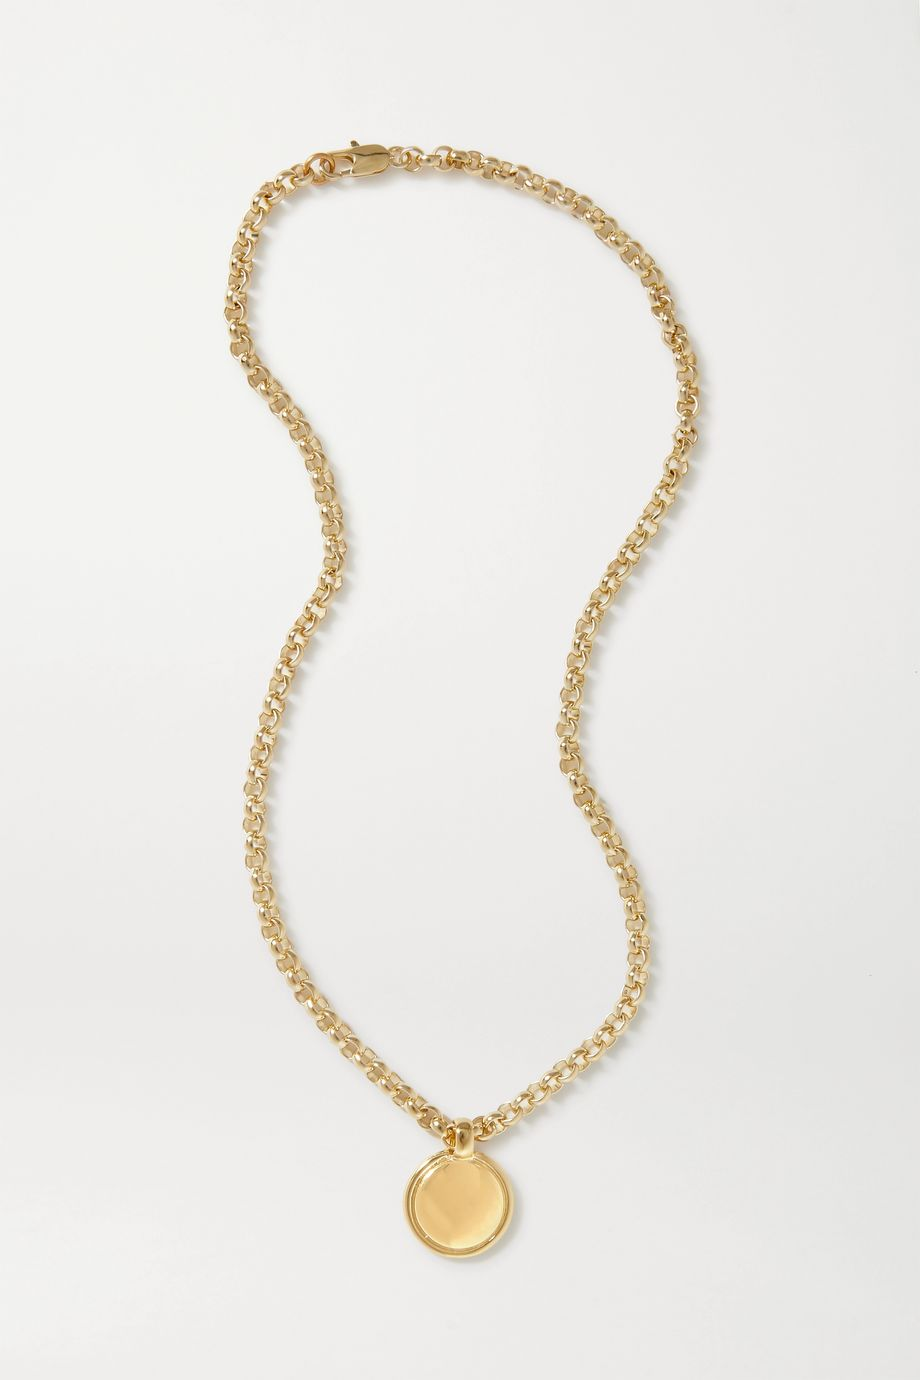 Laura Lombardi + NET SUSTAIN Rosa gold-plated necklace